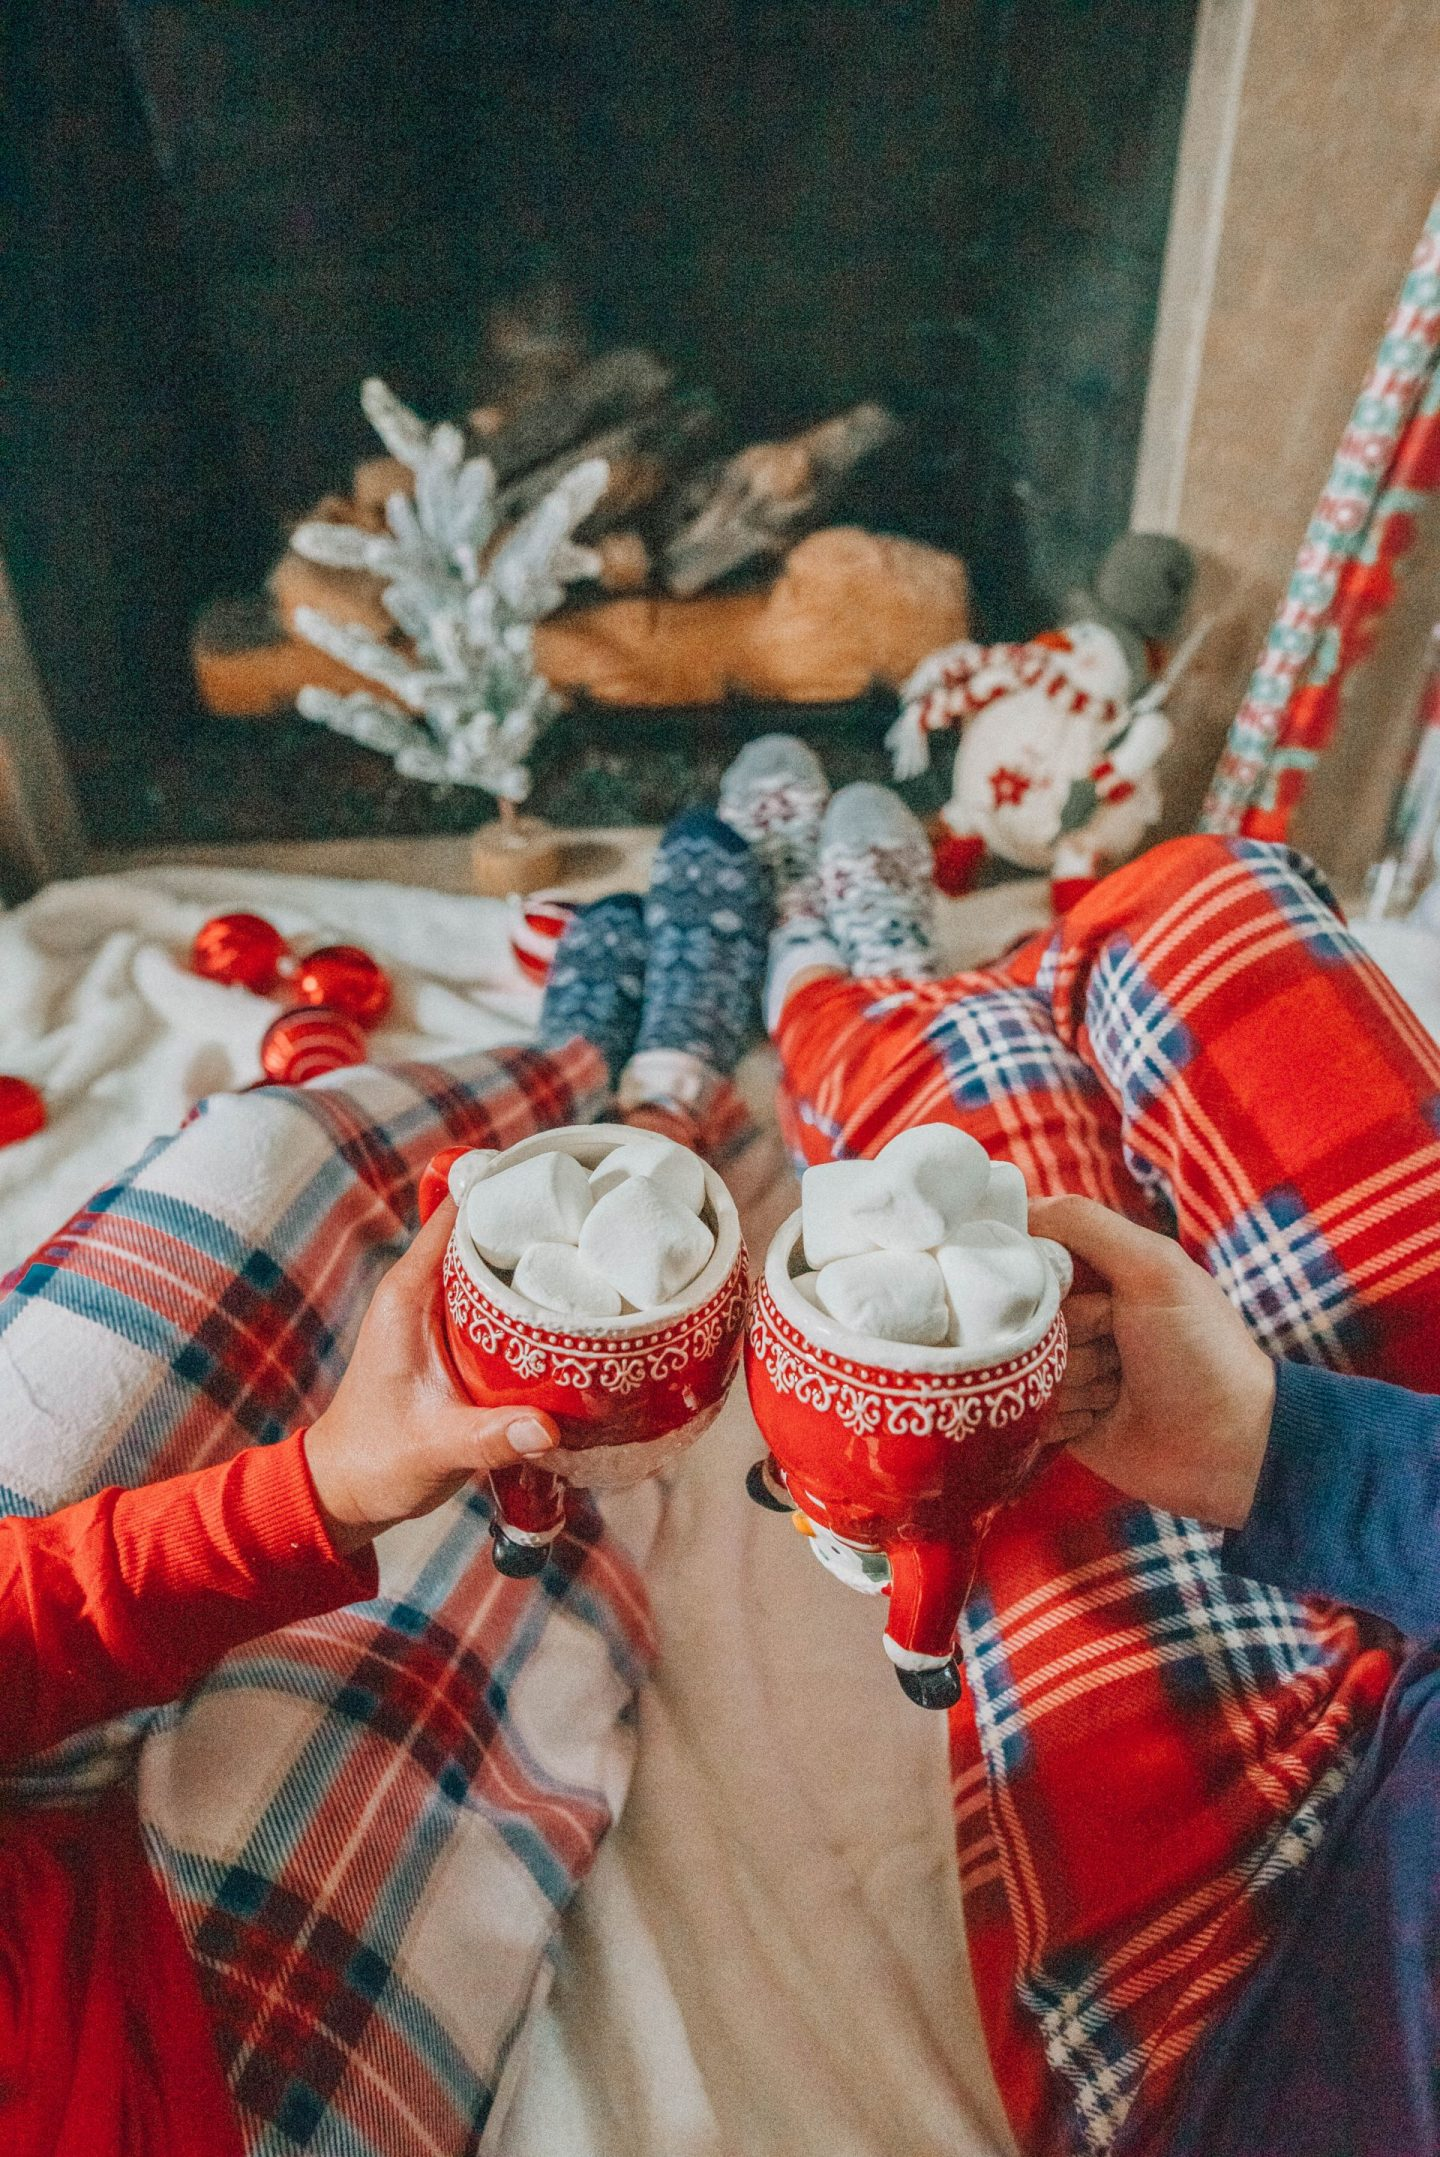 hot cocoa by the fireplace - holiday season - holiday season photo shoot ideas - image from www.emmasedition.com - Instagram @emmasedition